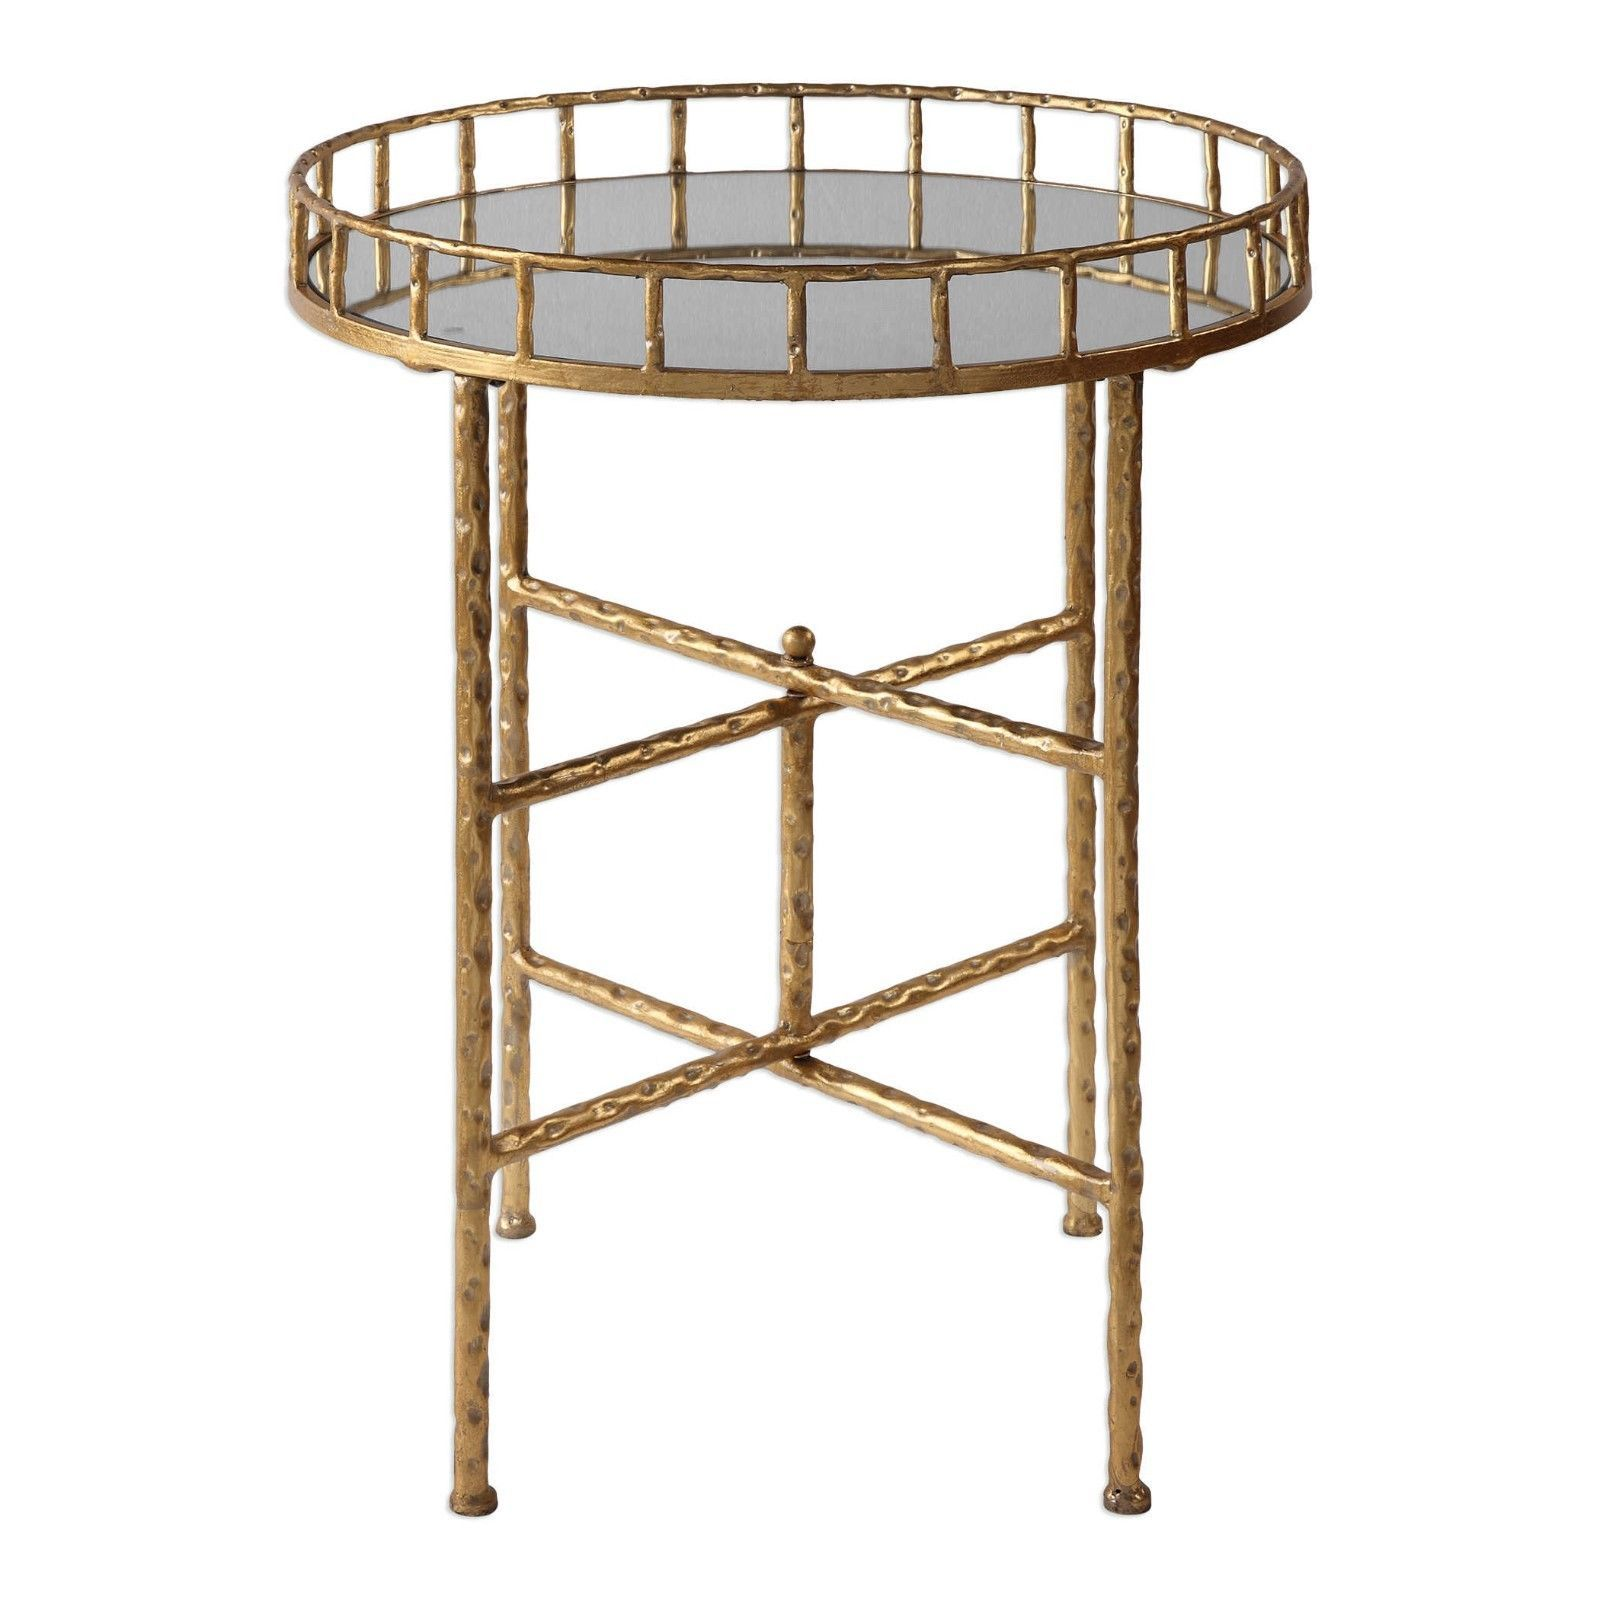 Primary image for Cross Bar Tray Side Table Antique Gold 26H Mirror Top End Hammered Metal Round